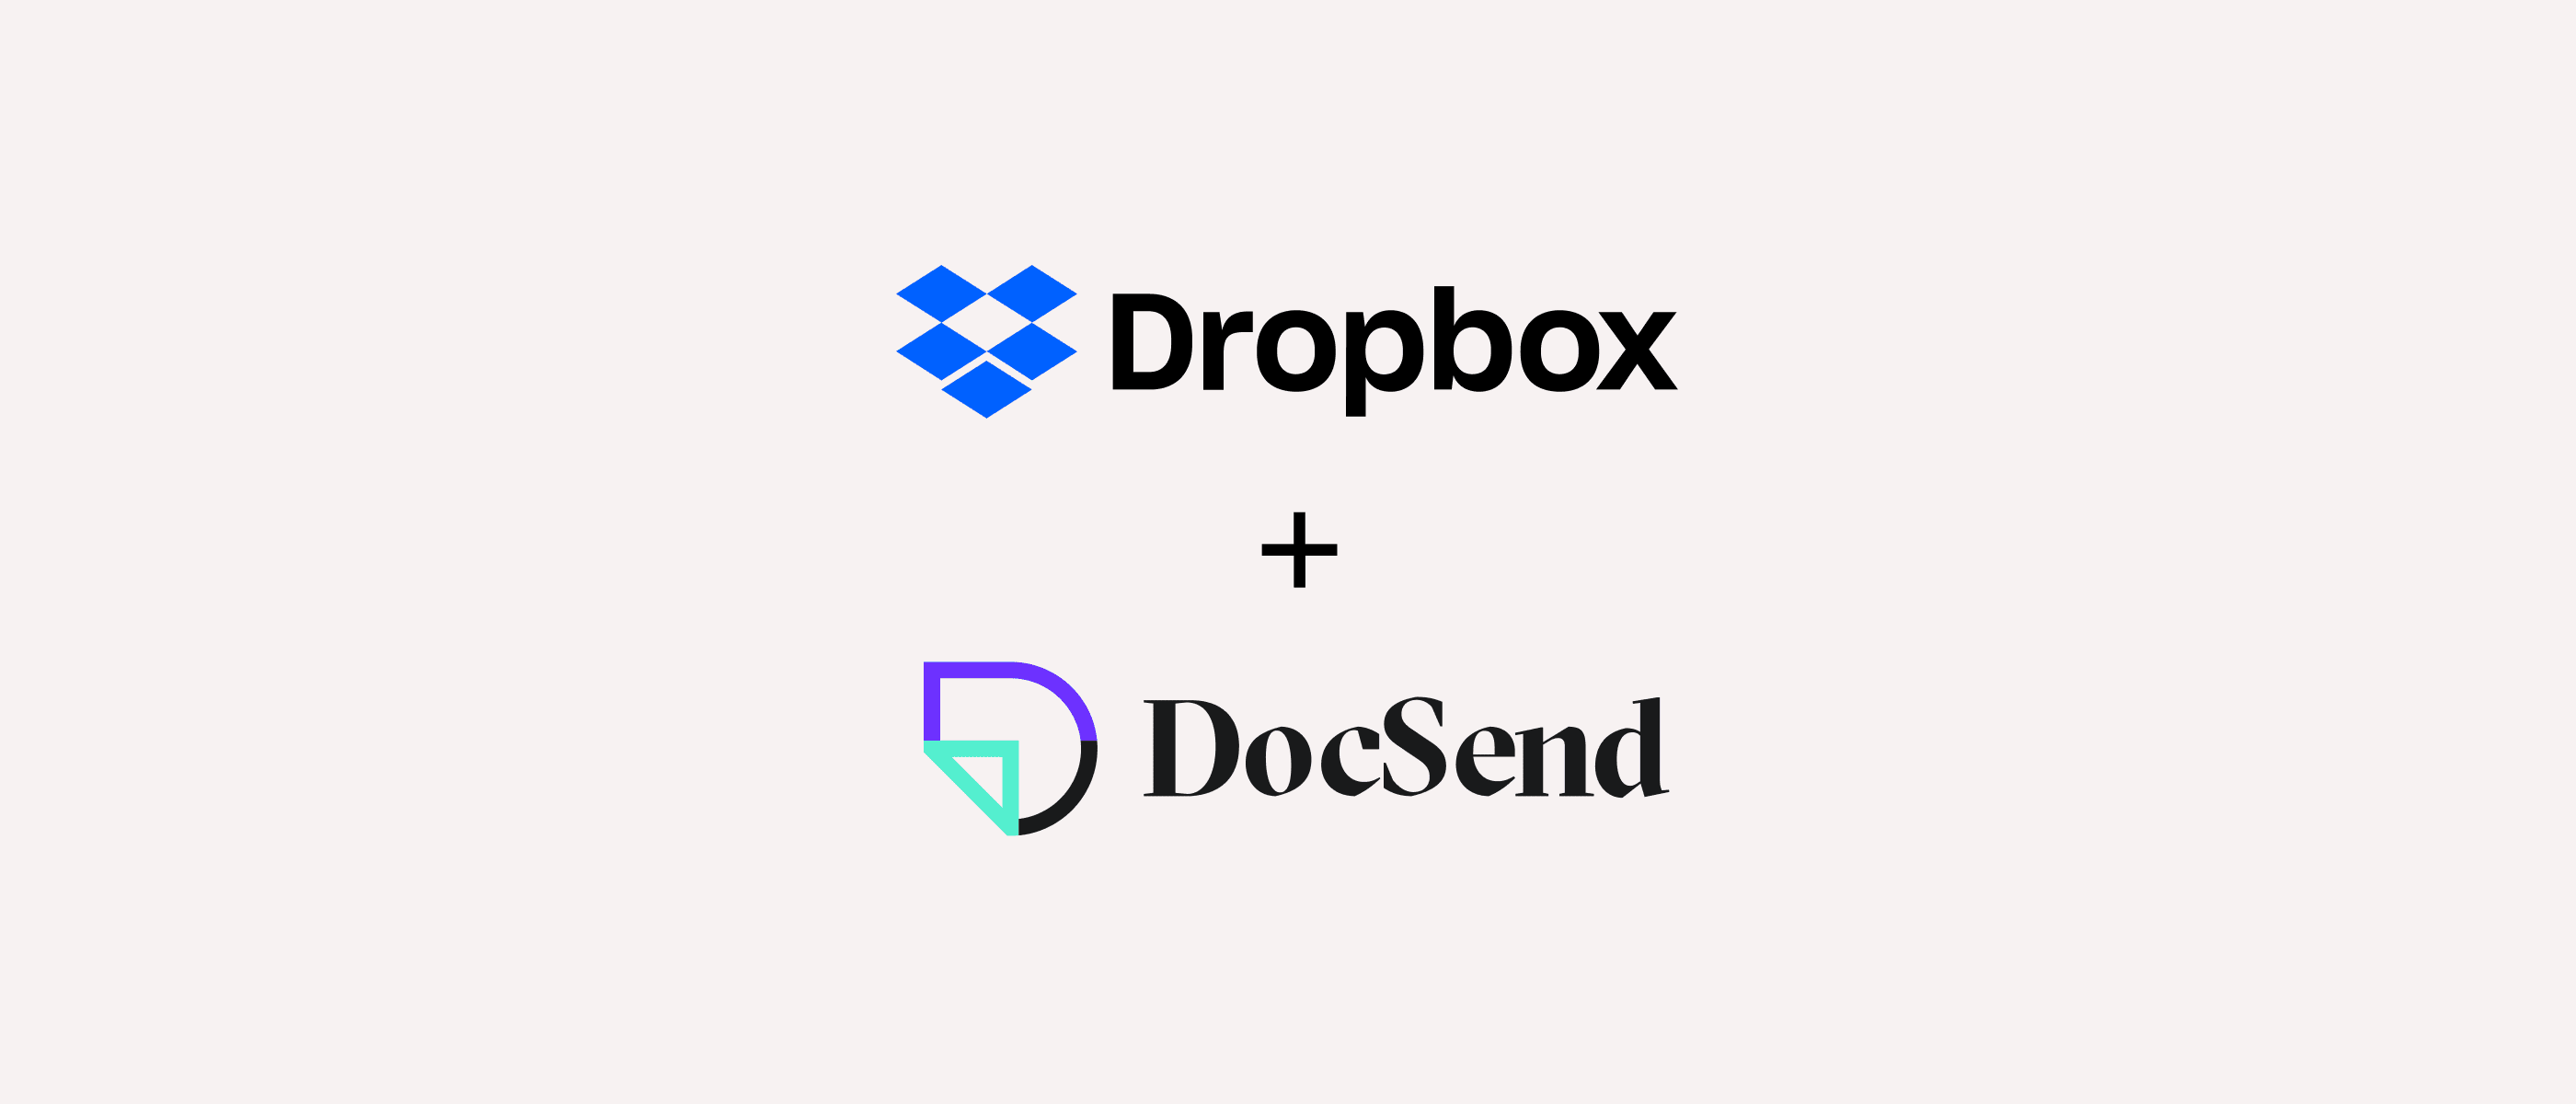 Our client, DocSend, got acquired by Dropbox